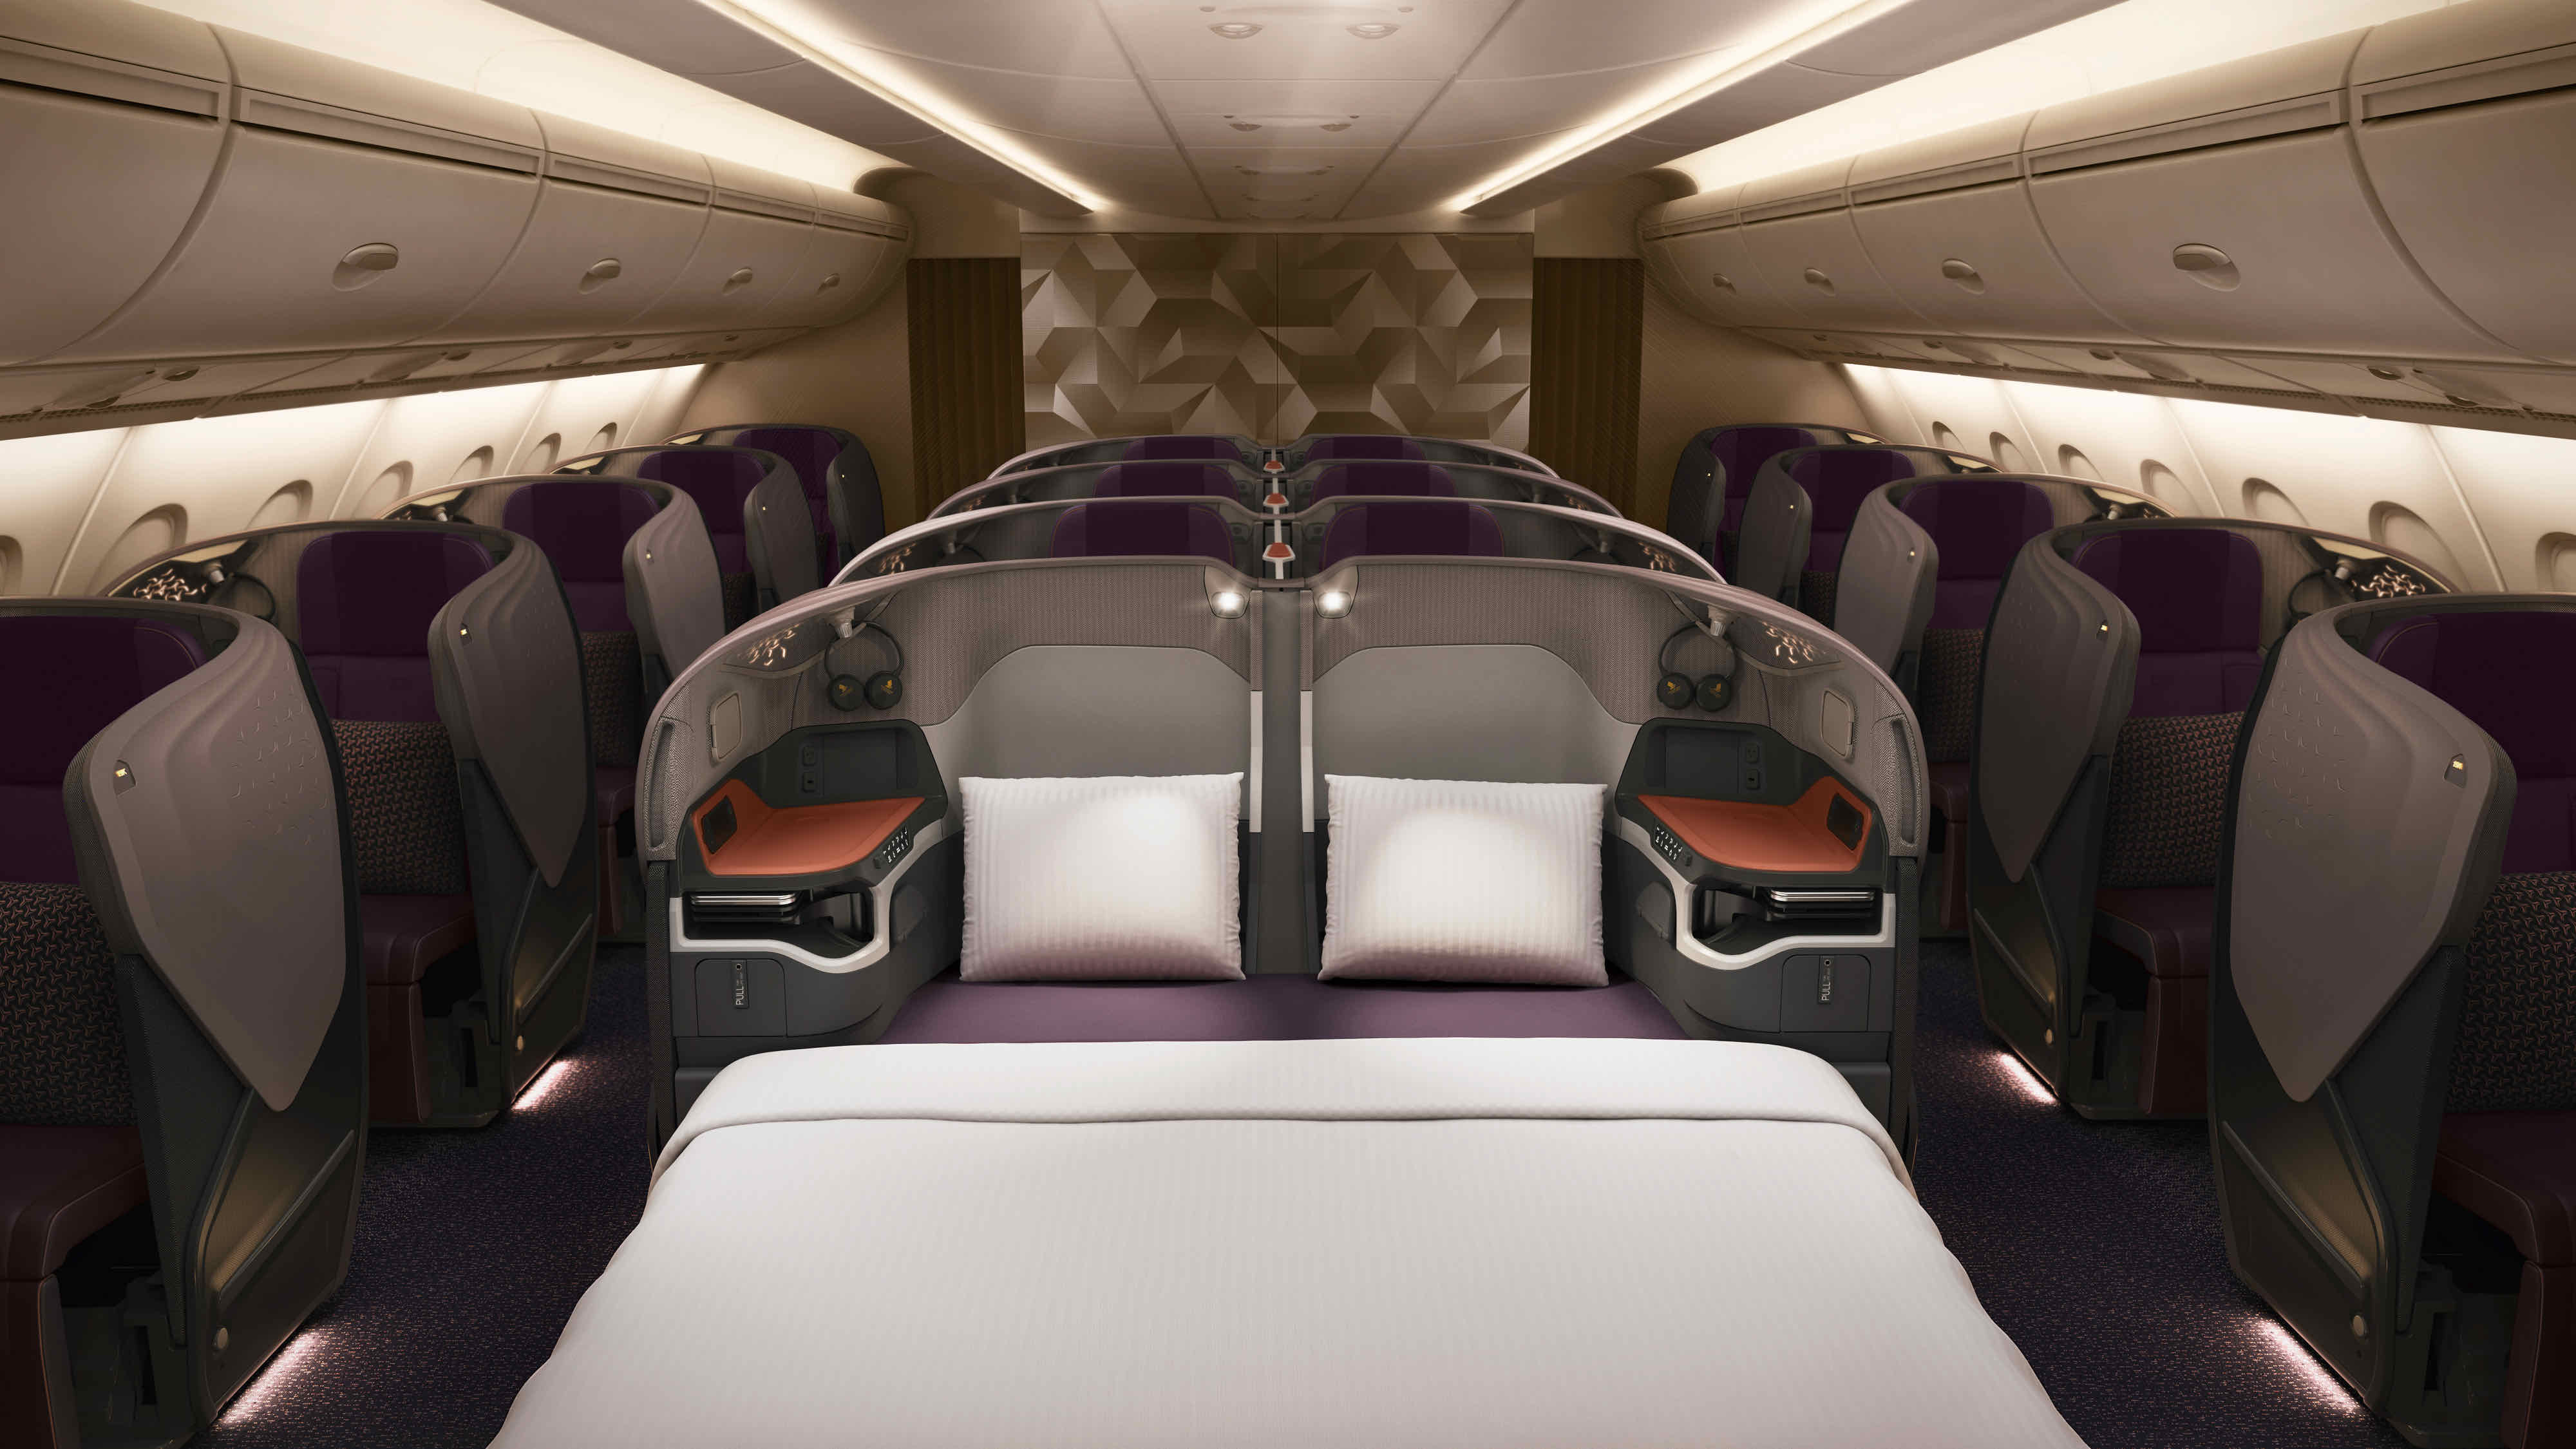 Singapore Airlines A380 New Business Class lie-flat bed